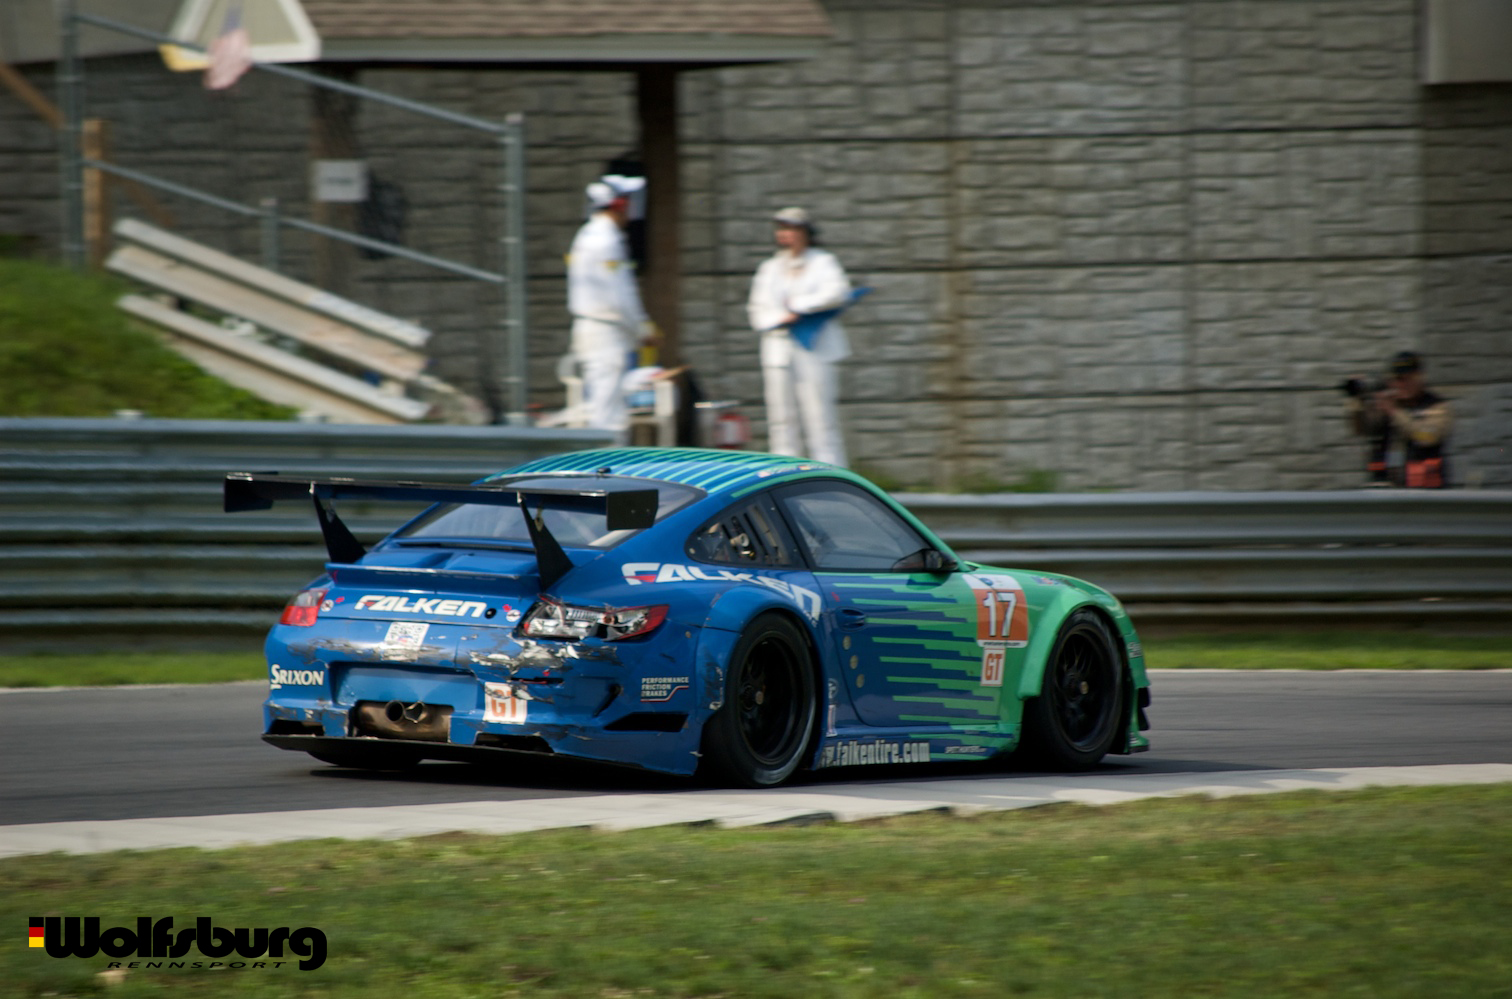 The iconic teal and blue Falken Tire Porsche 911 RSR at Lime Rock Park